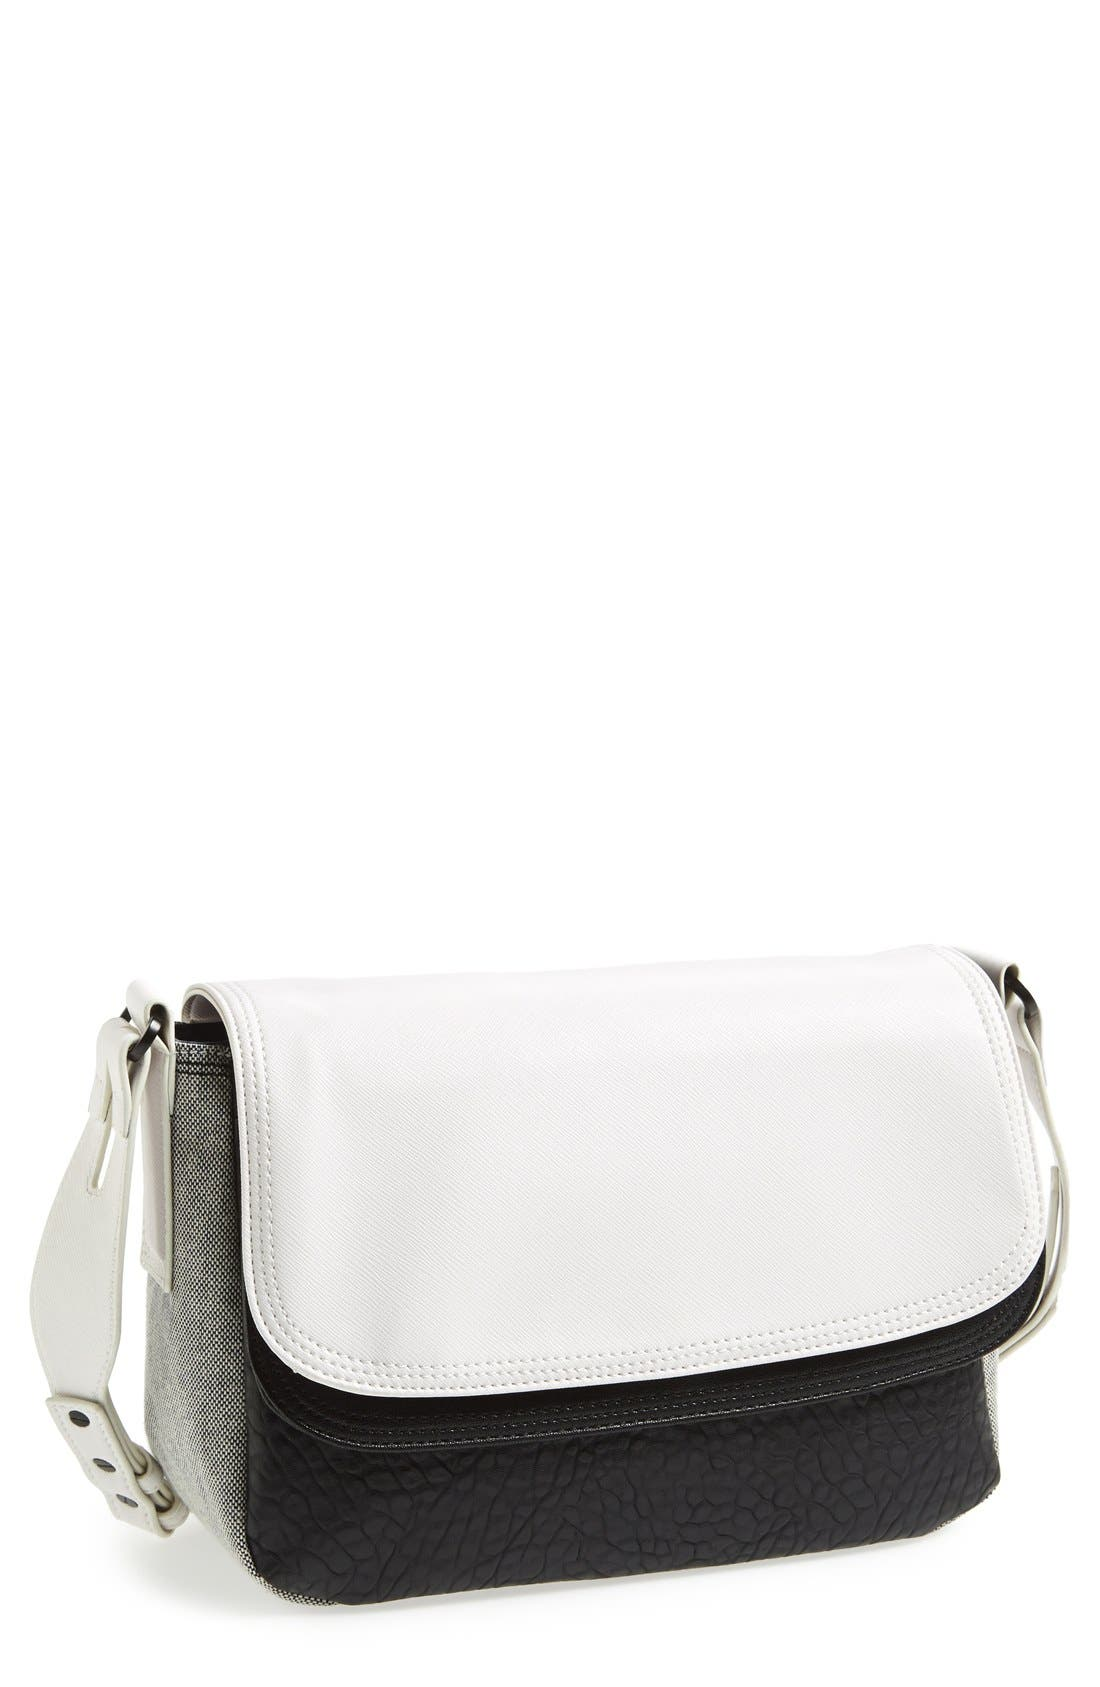 Main Image - French Connection Faux Leather Crossbody Bag